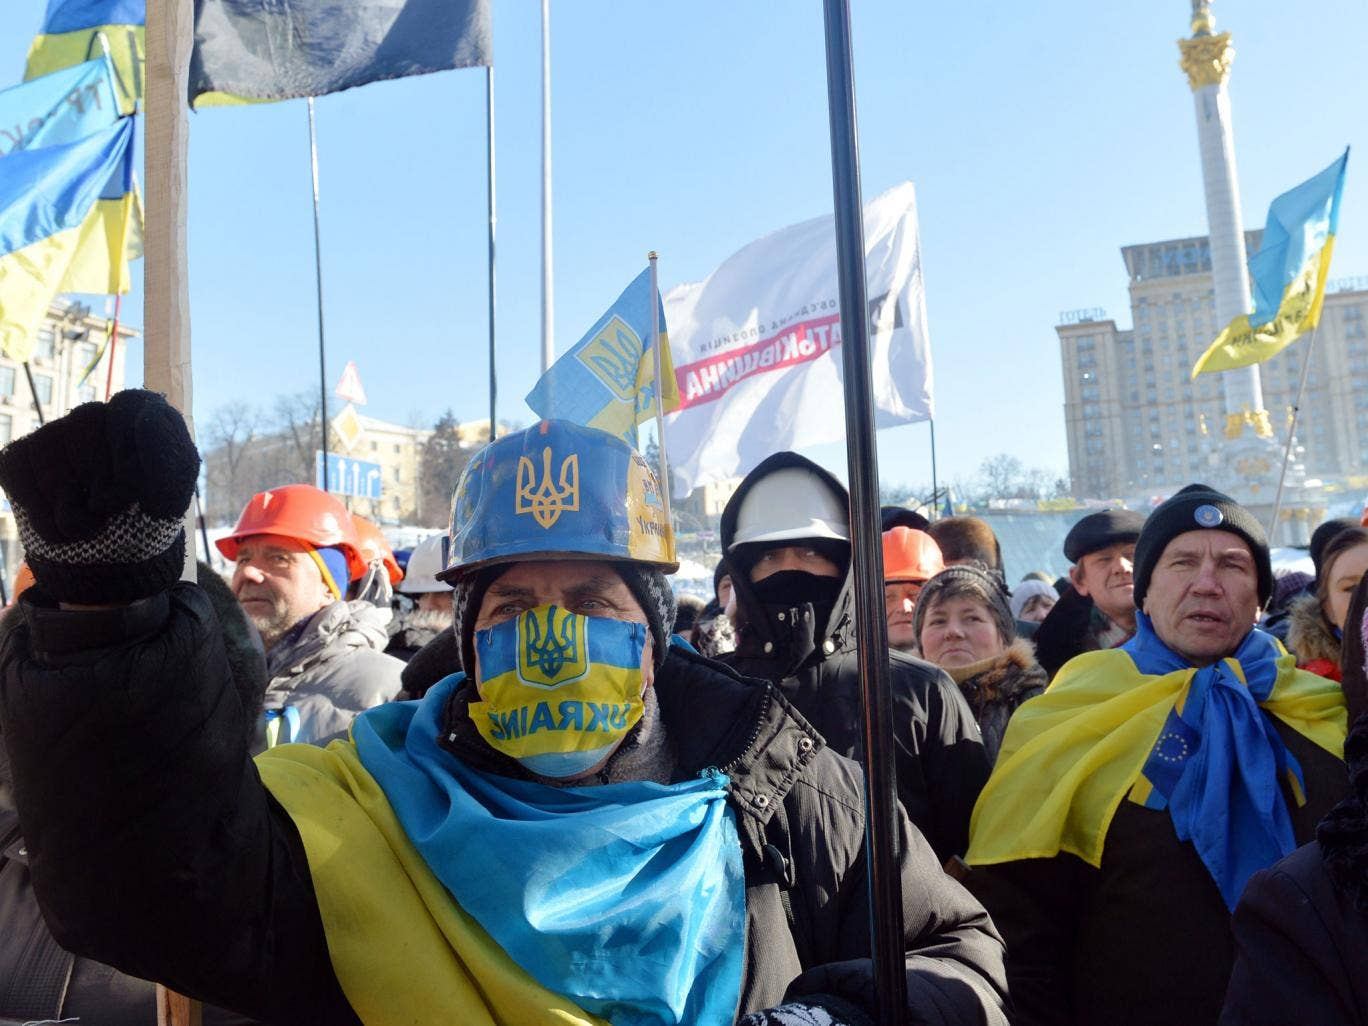 Anti-government protesters take part in a demo in Kiev on February 2, 2014. Ukraine's opposition holds a new rally amid concern about military intervention in the country's worst crisis since independence, after pledges of support from Europe and the Unit